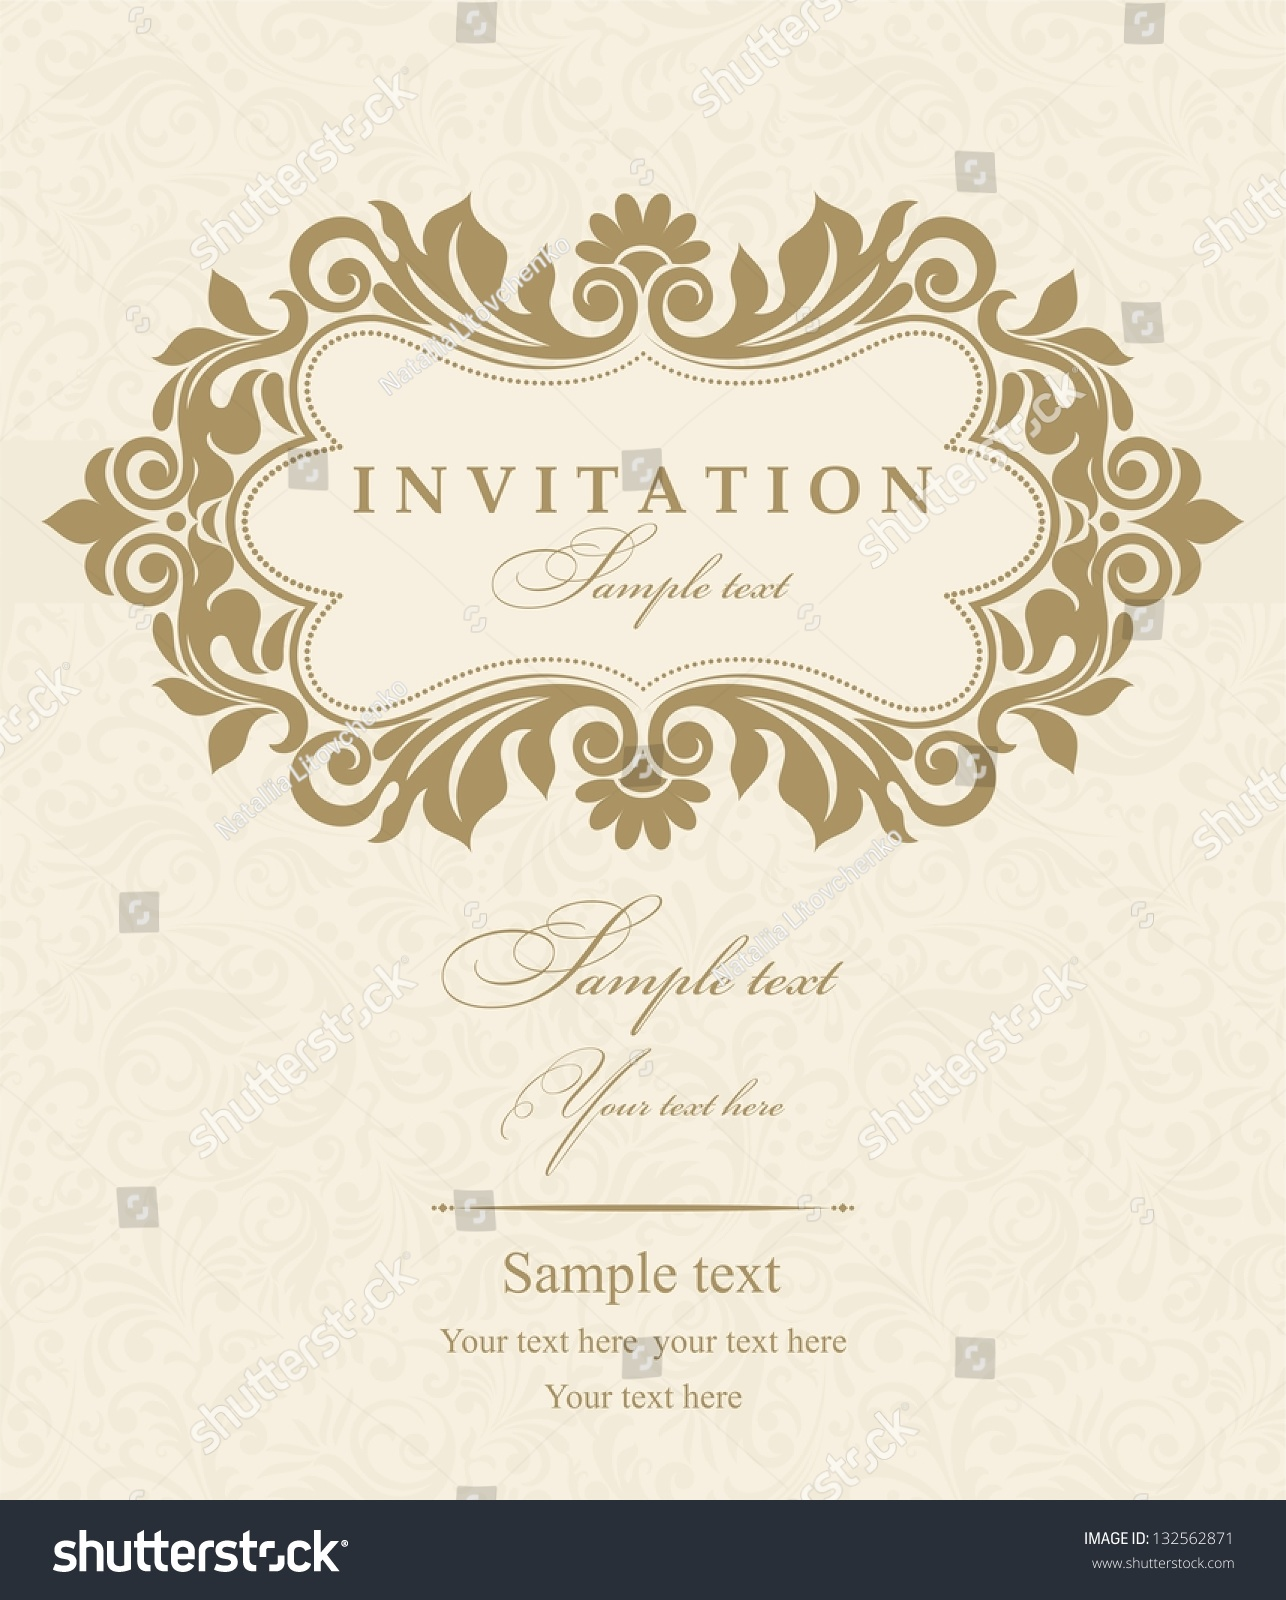 Free E Wedding Invitation Card Templates is perfect invitation sample